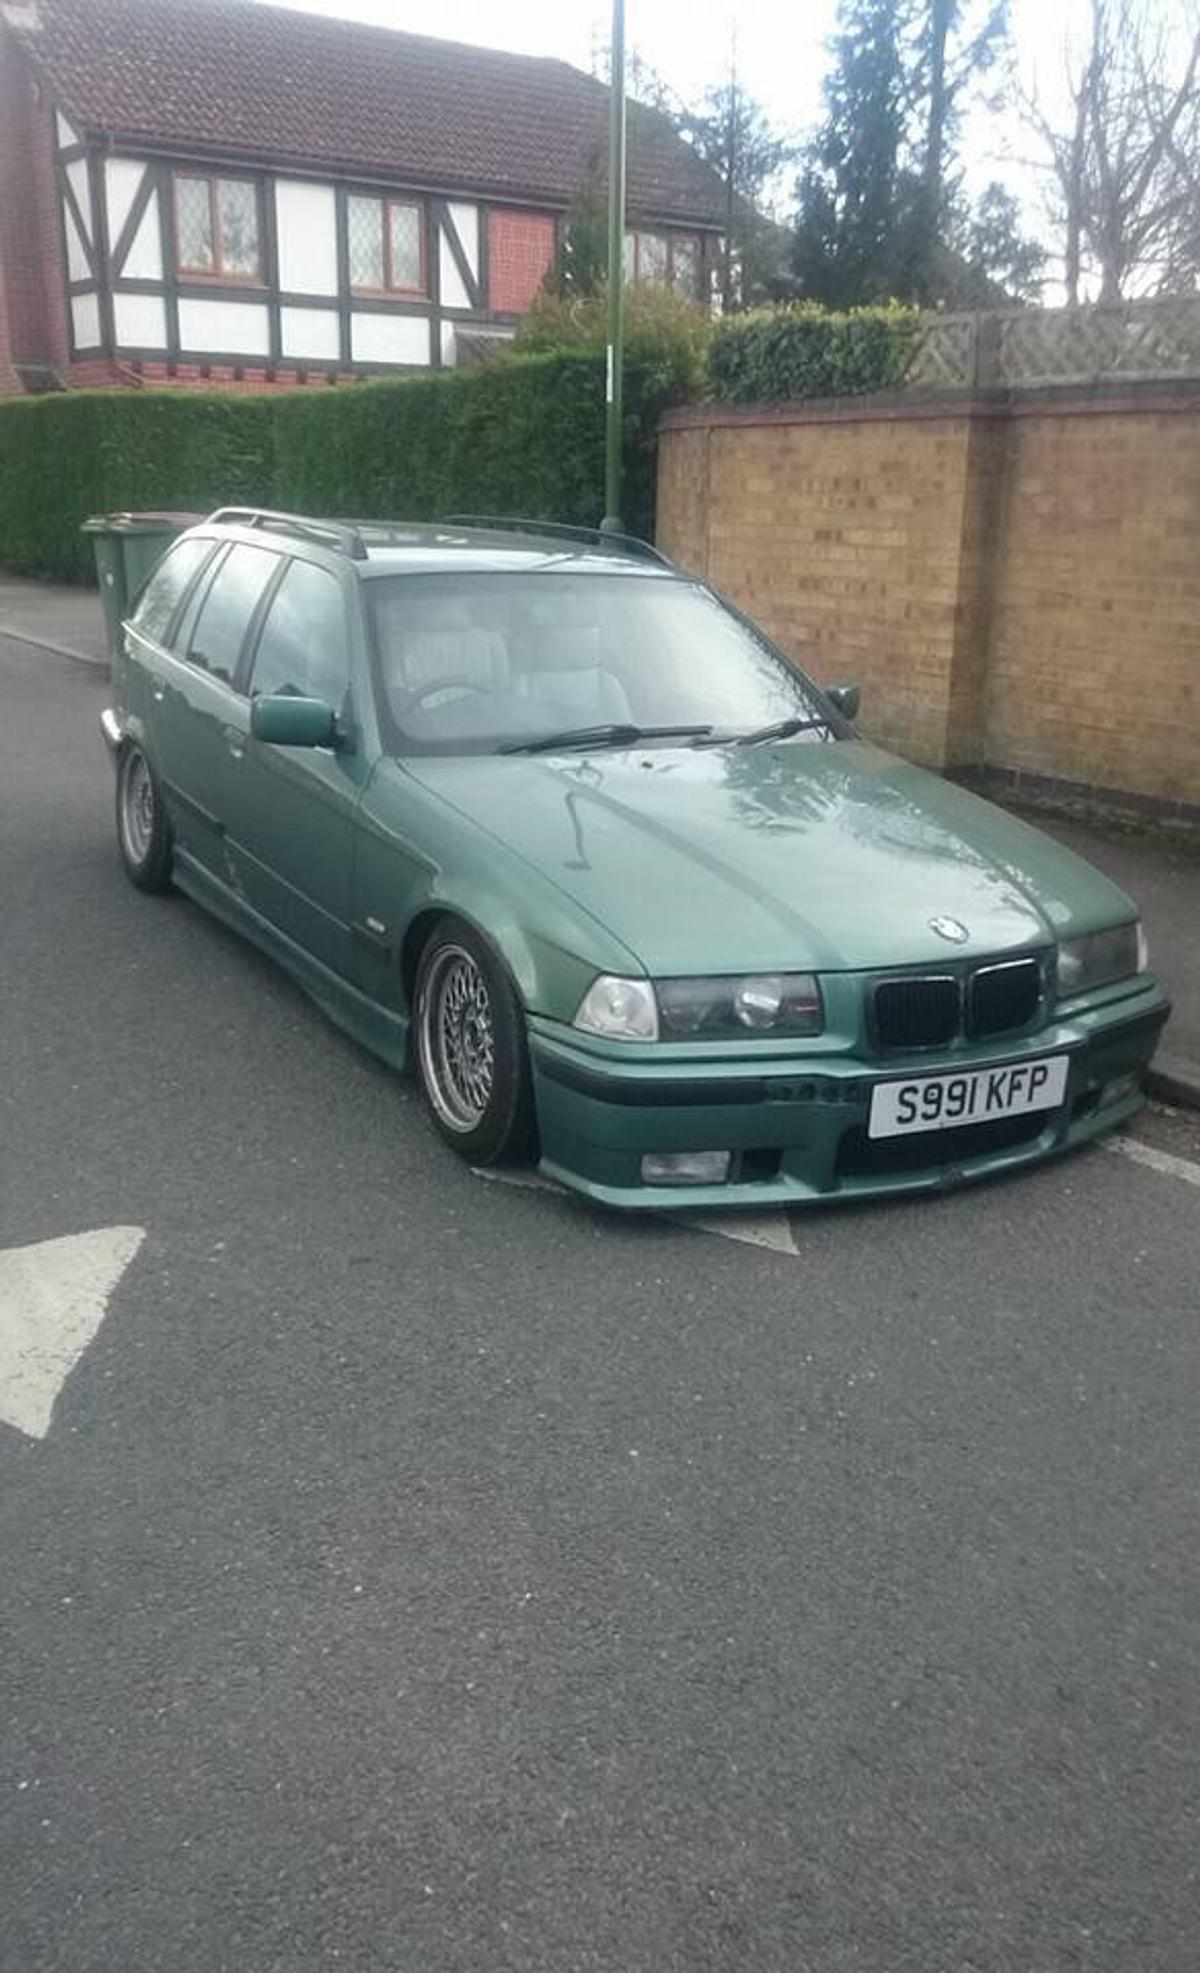 Bmw e36 323 drift car in CO16-Sea for £1,000 00 for sale